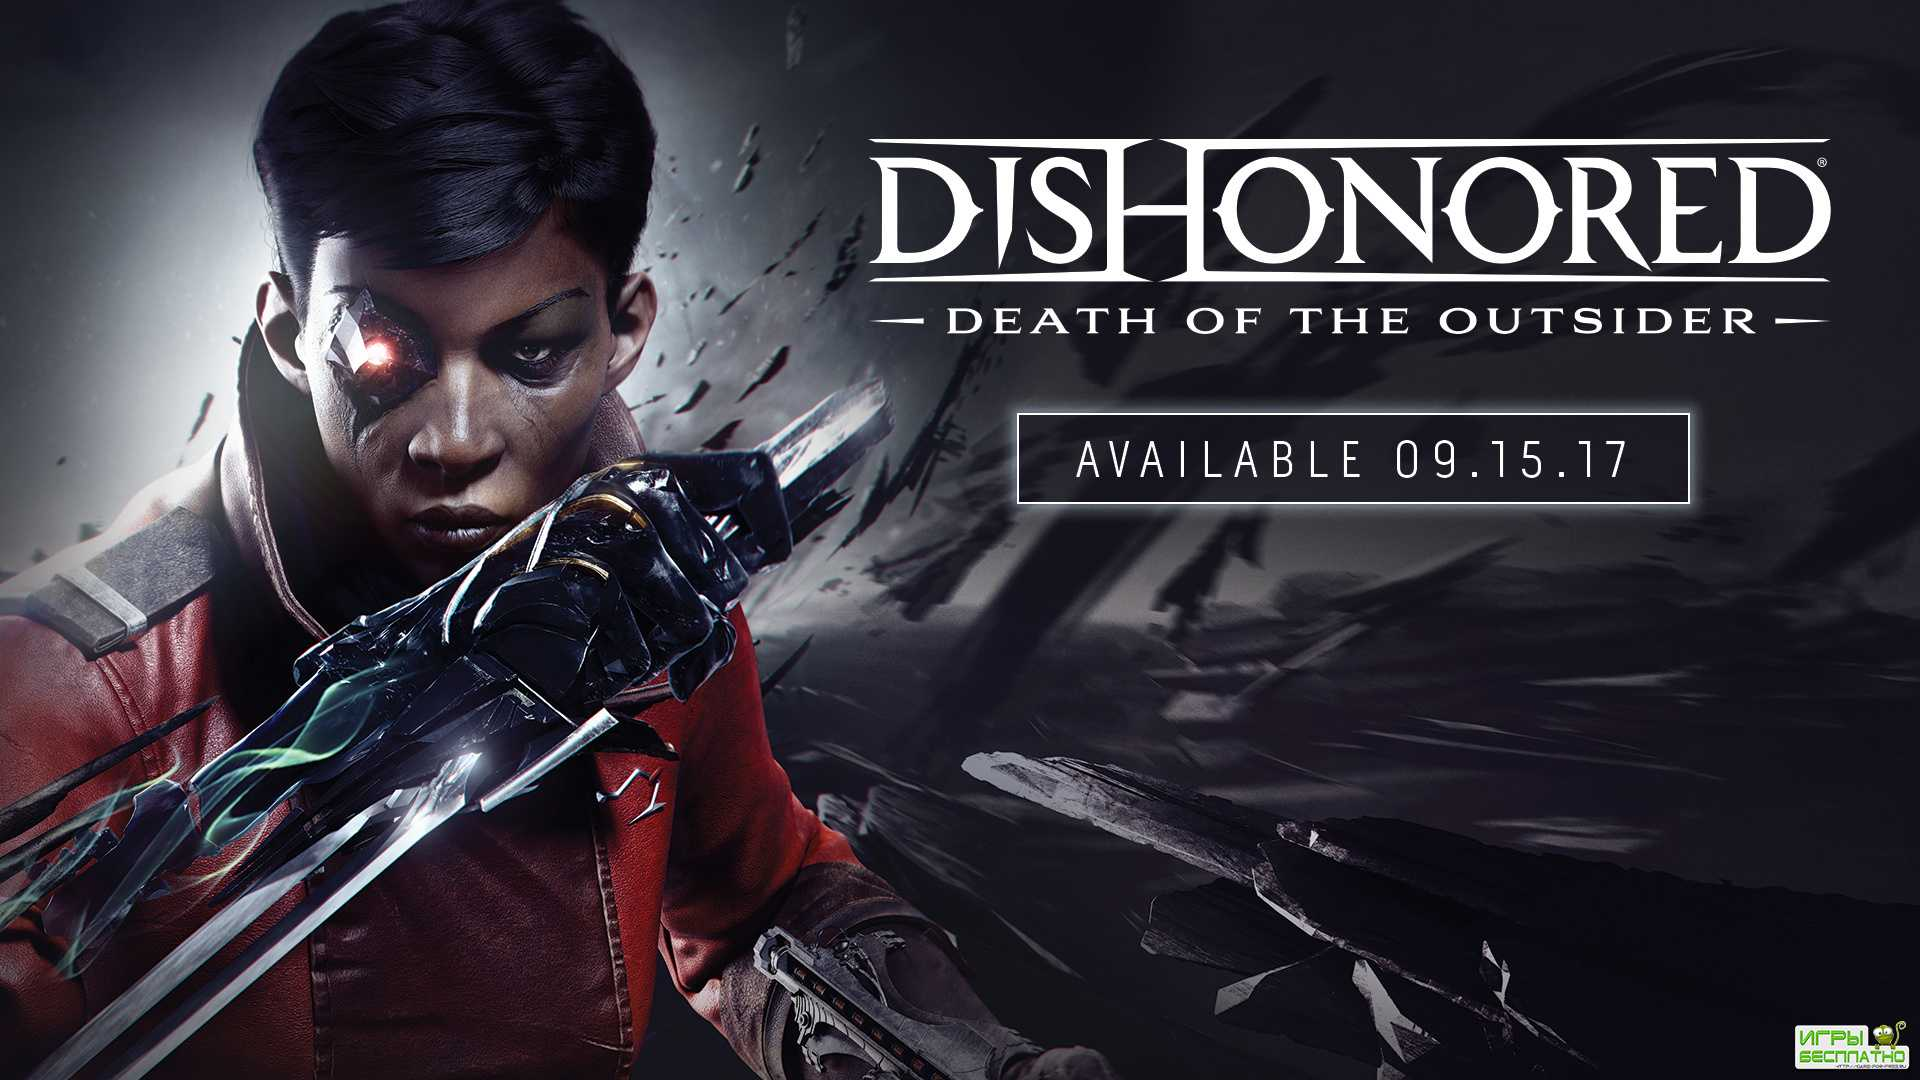 Bethesda предлагает убить бога в новом трейлере Dishonored: Death of the Outsider